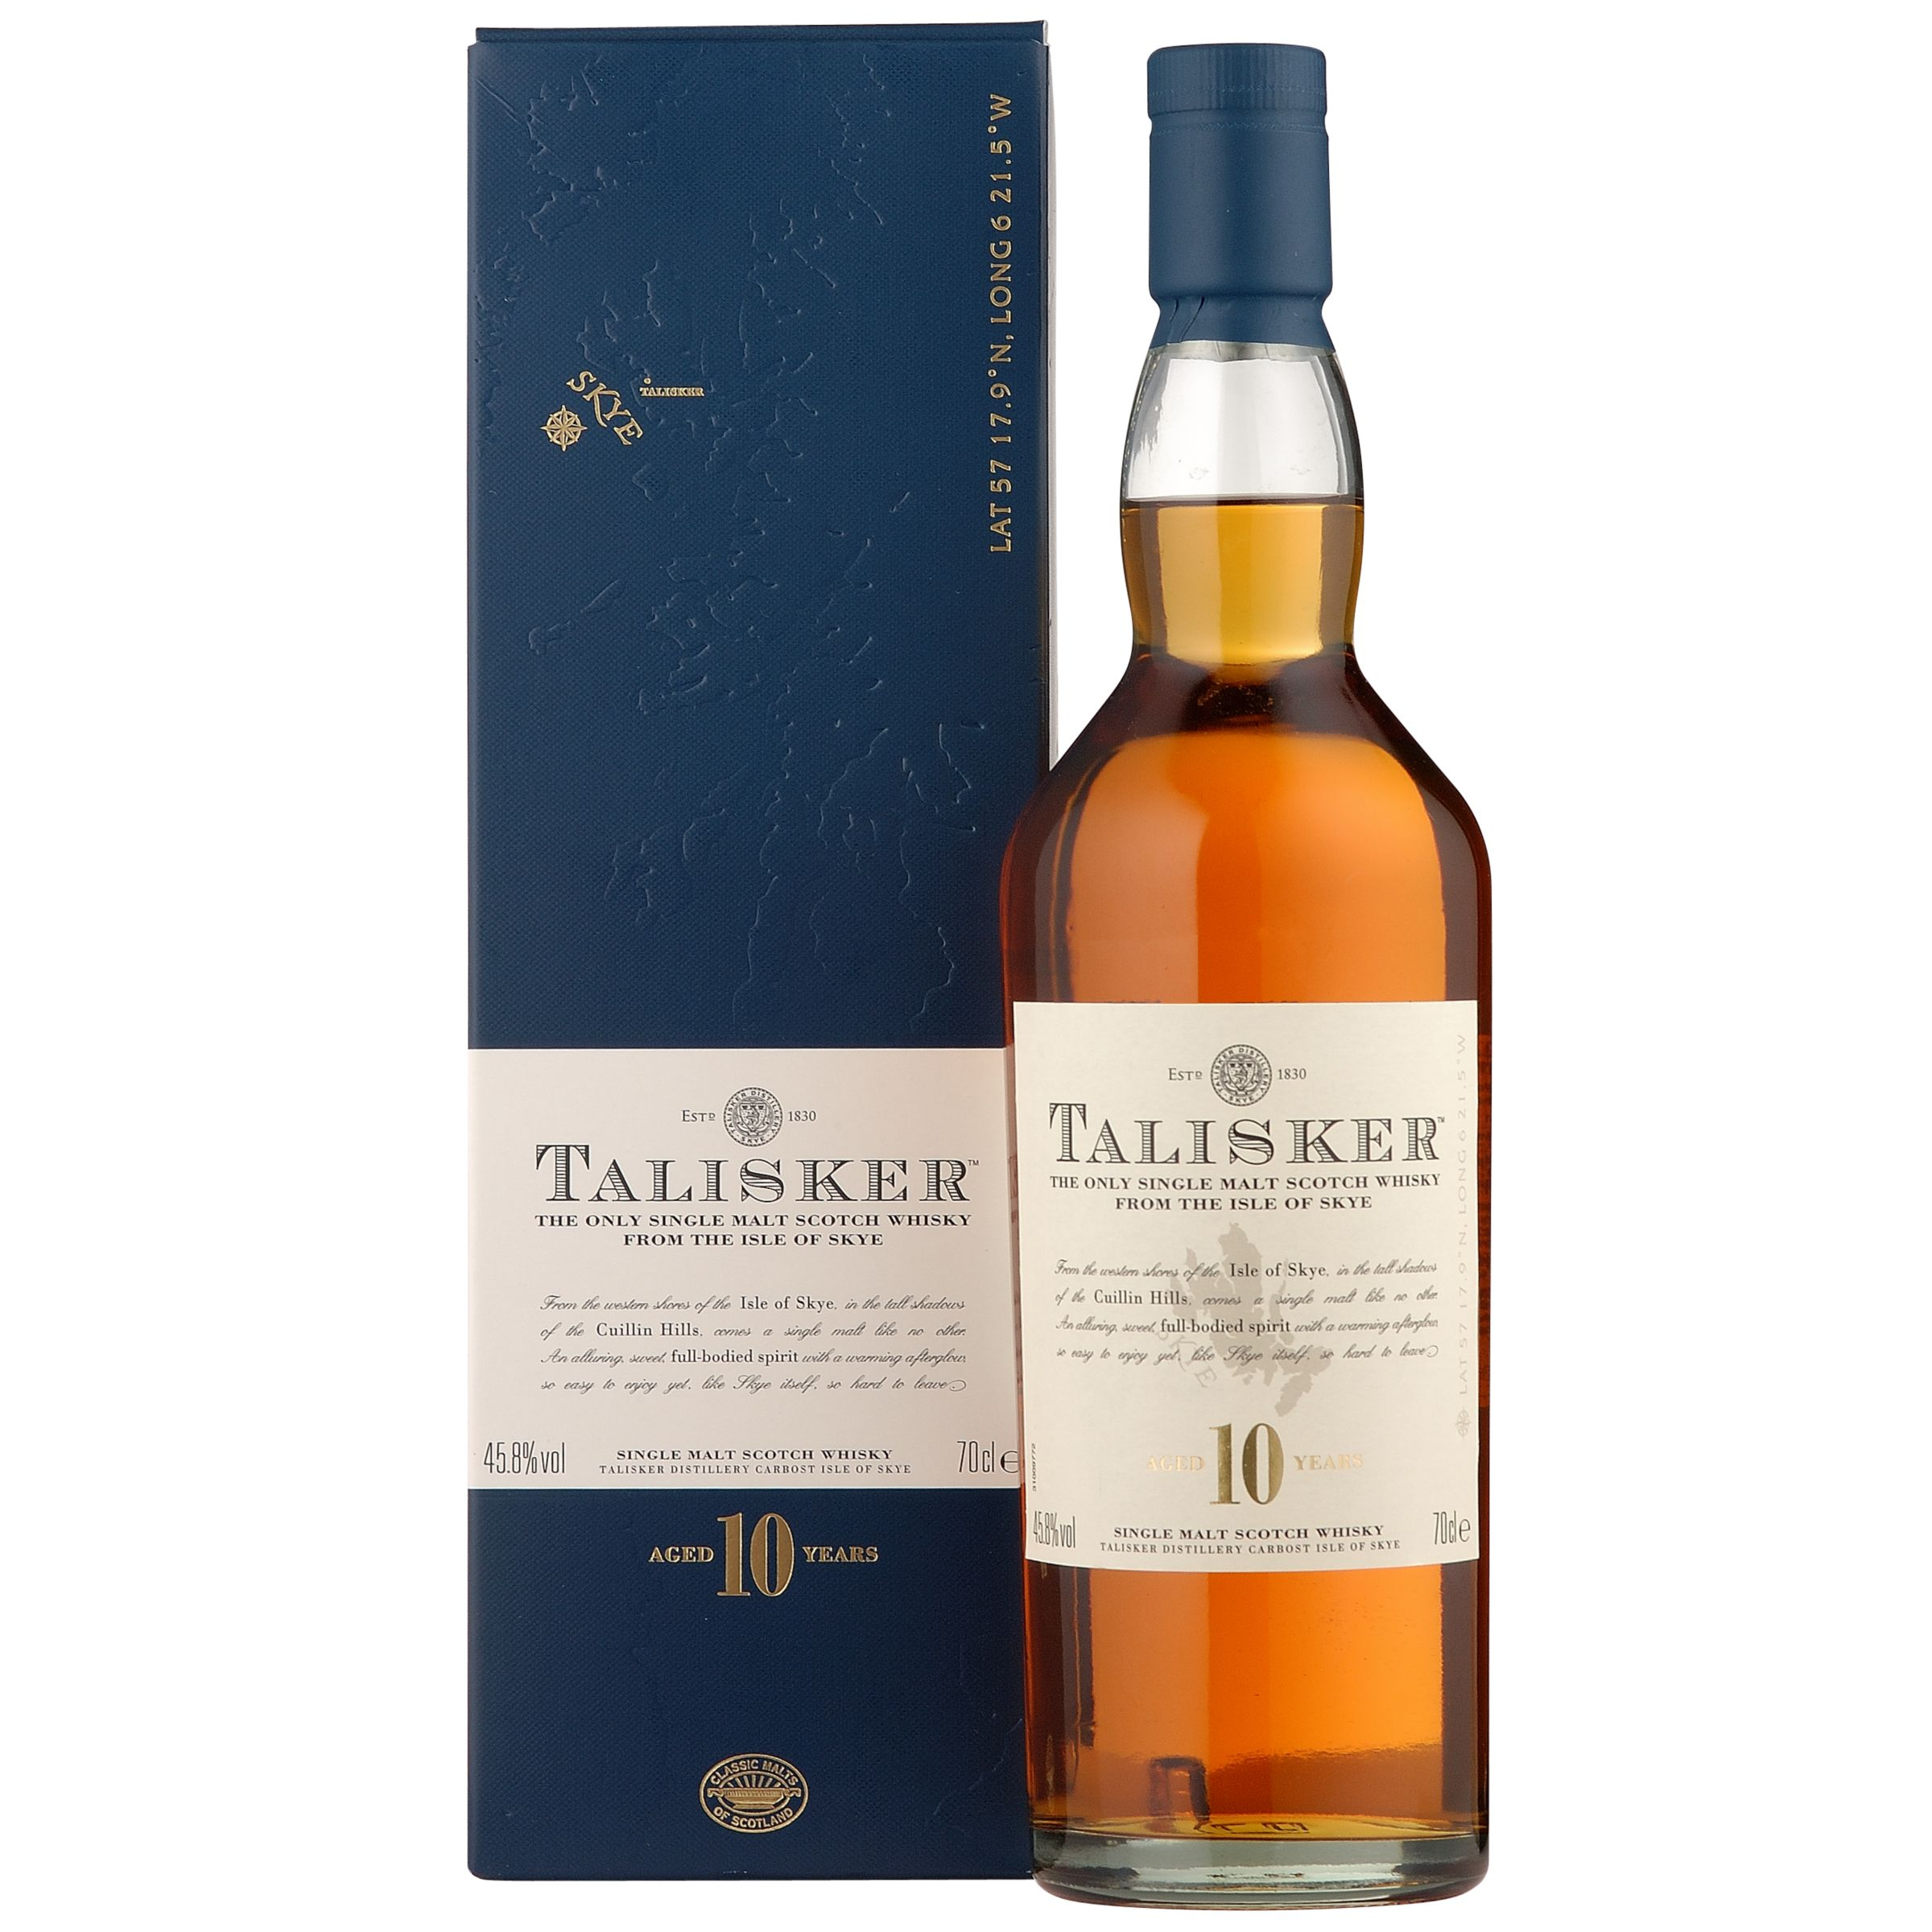 Talisker 10 Year Old Skye Malt Whisky